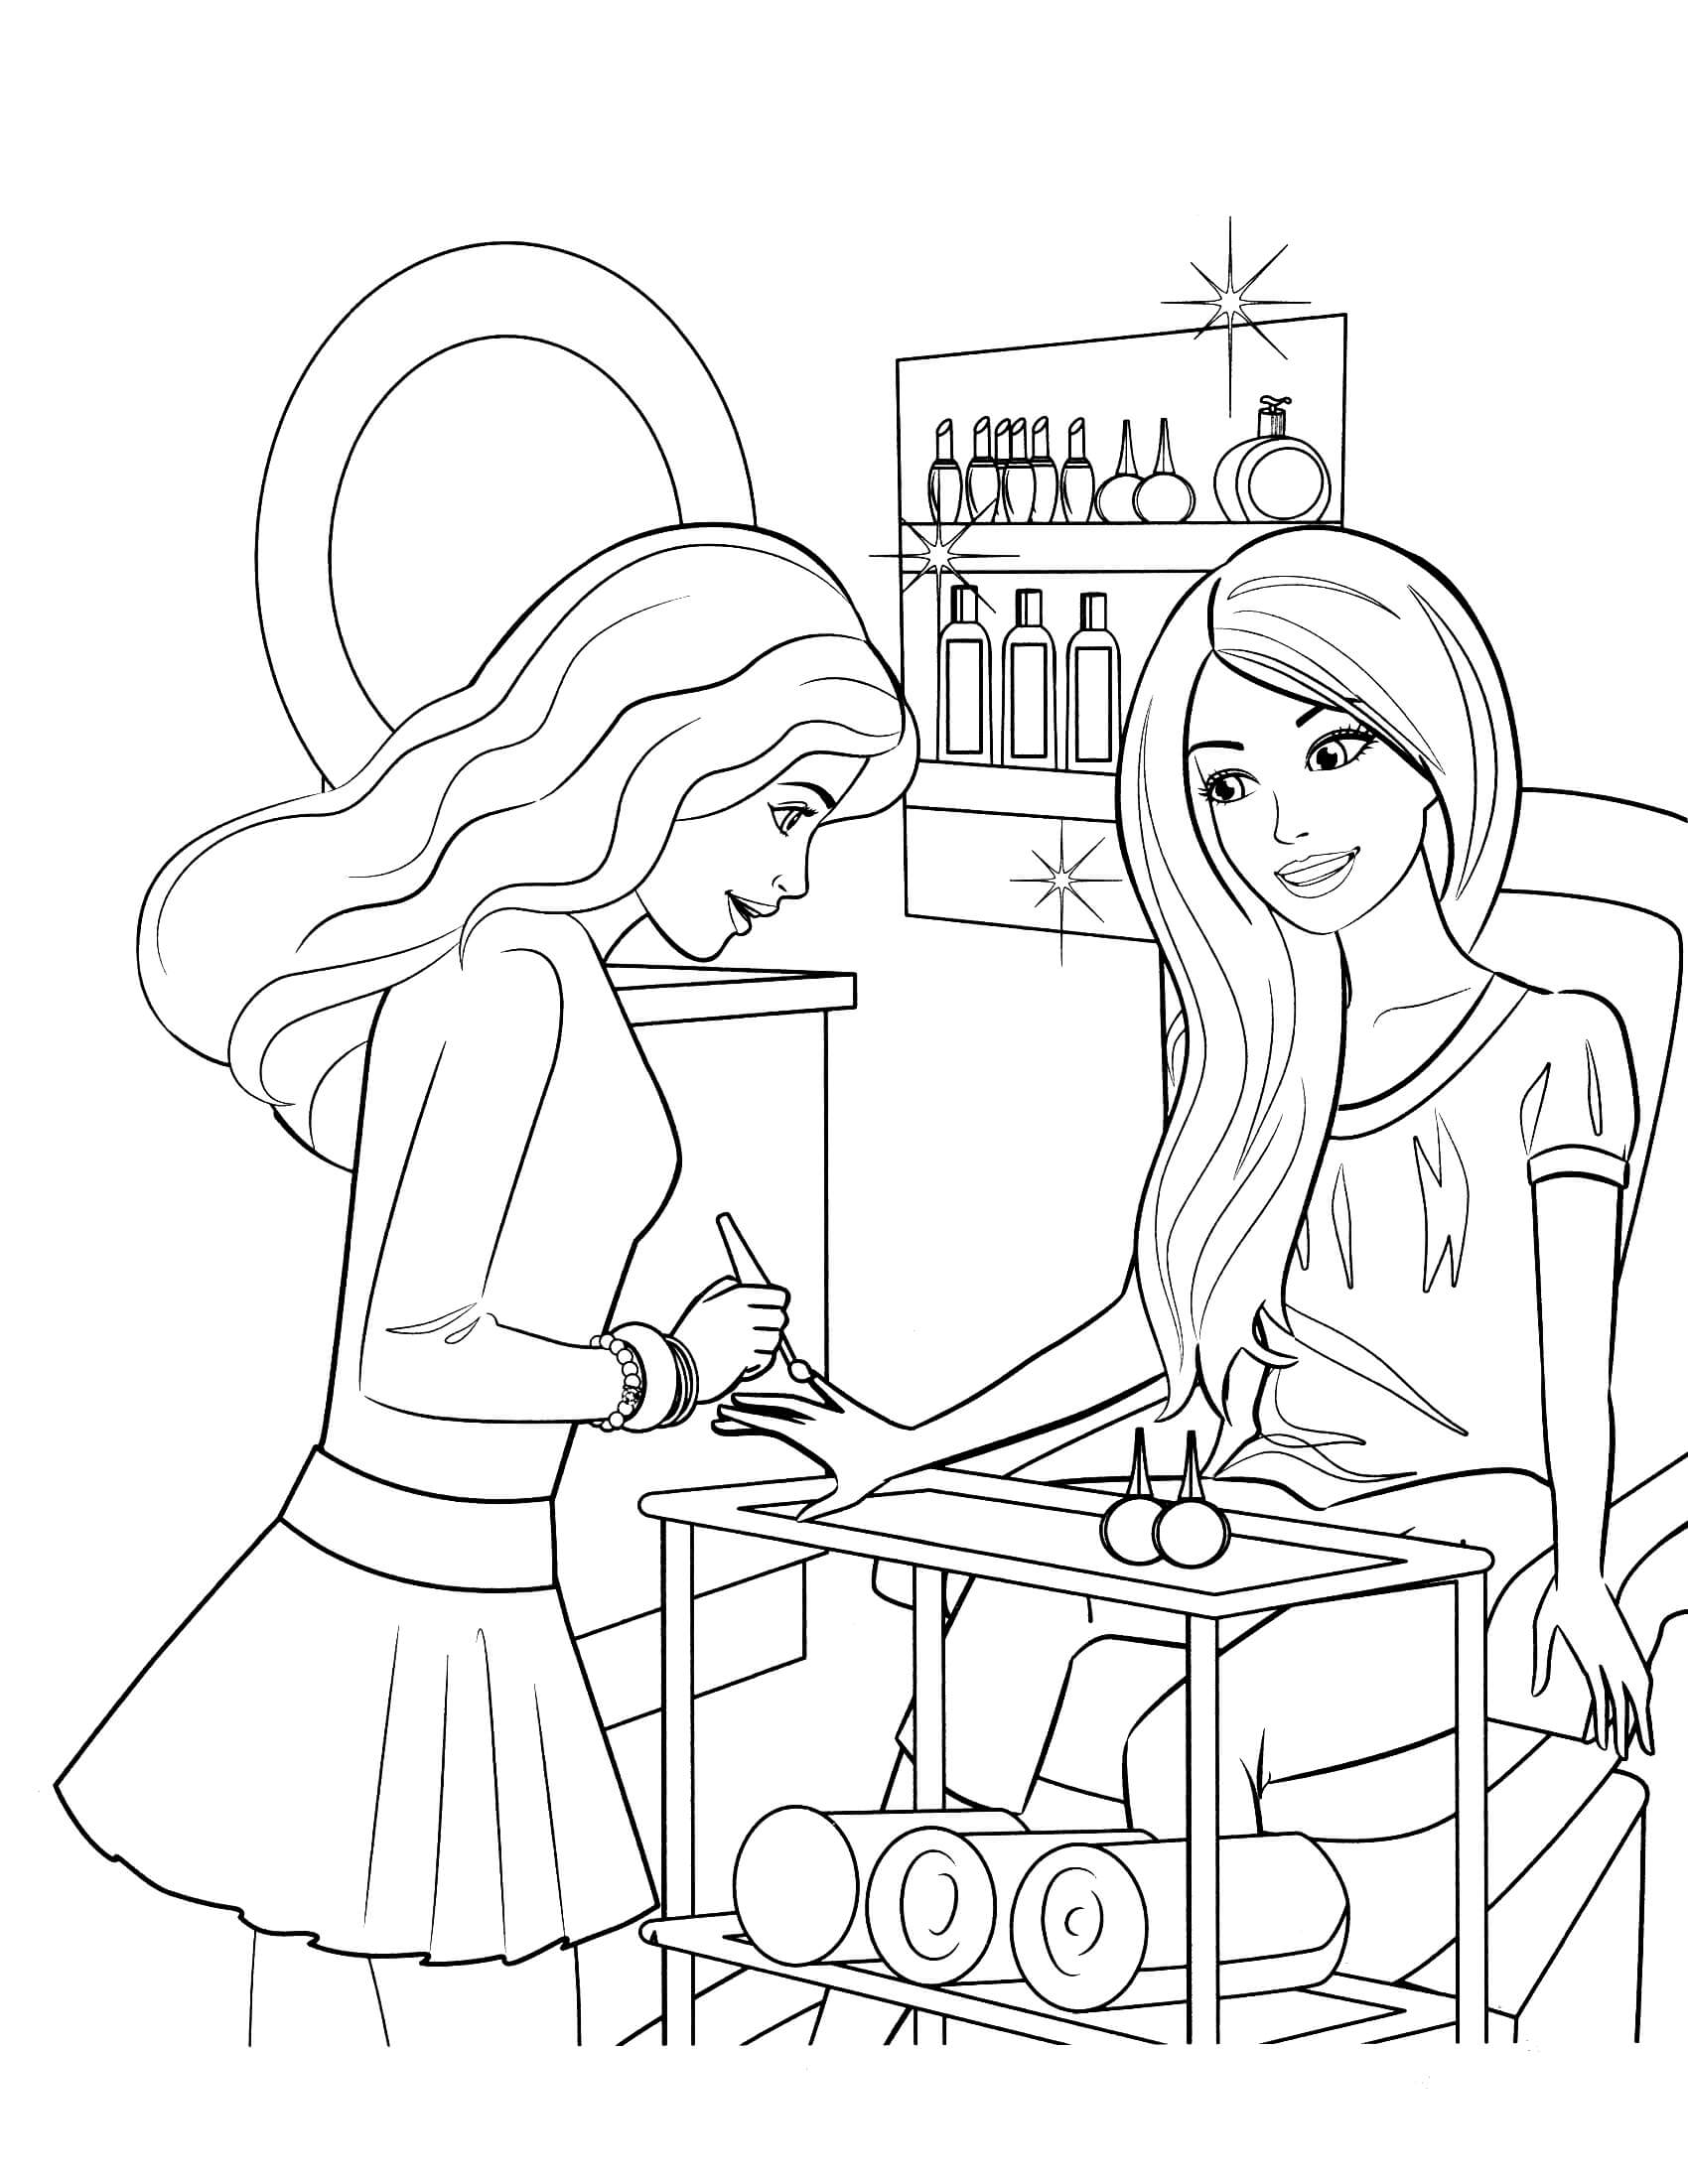 free barbie coloring pages free printable barbie coloring pages for kids barbie pages free coloring